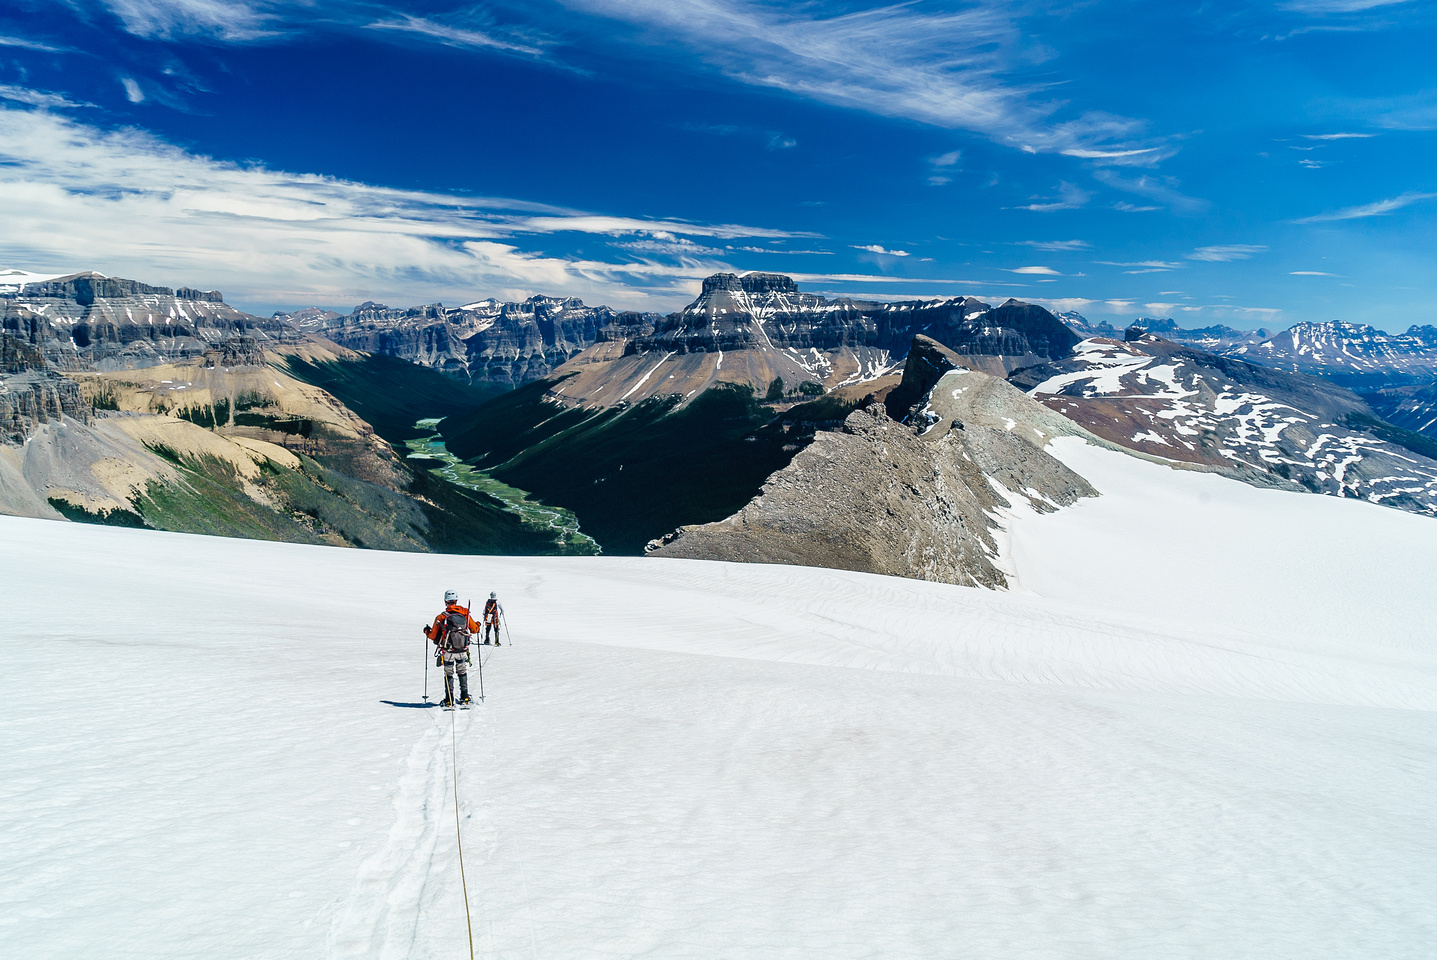 Like any icefield, the distances and elevation changes are drastically under represented from our vantage.